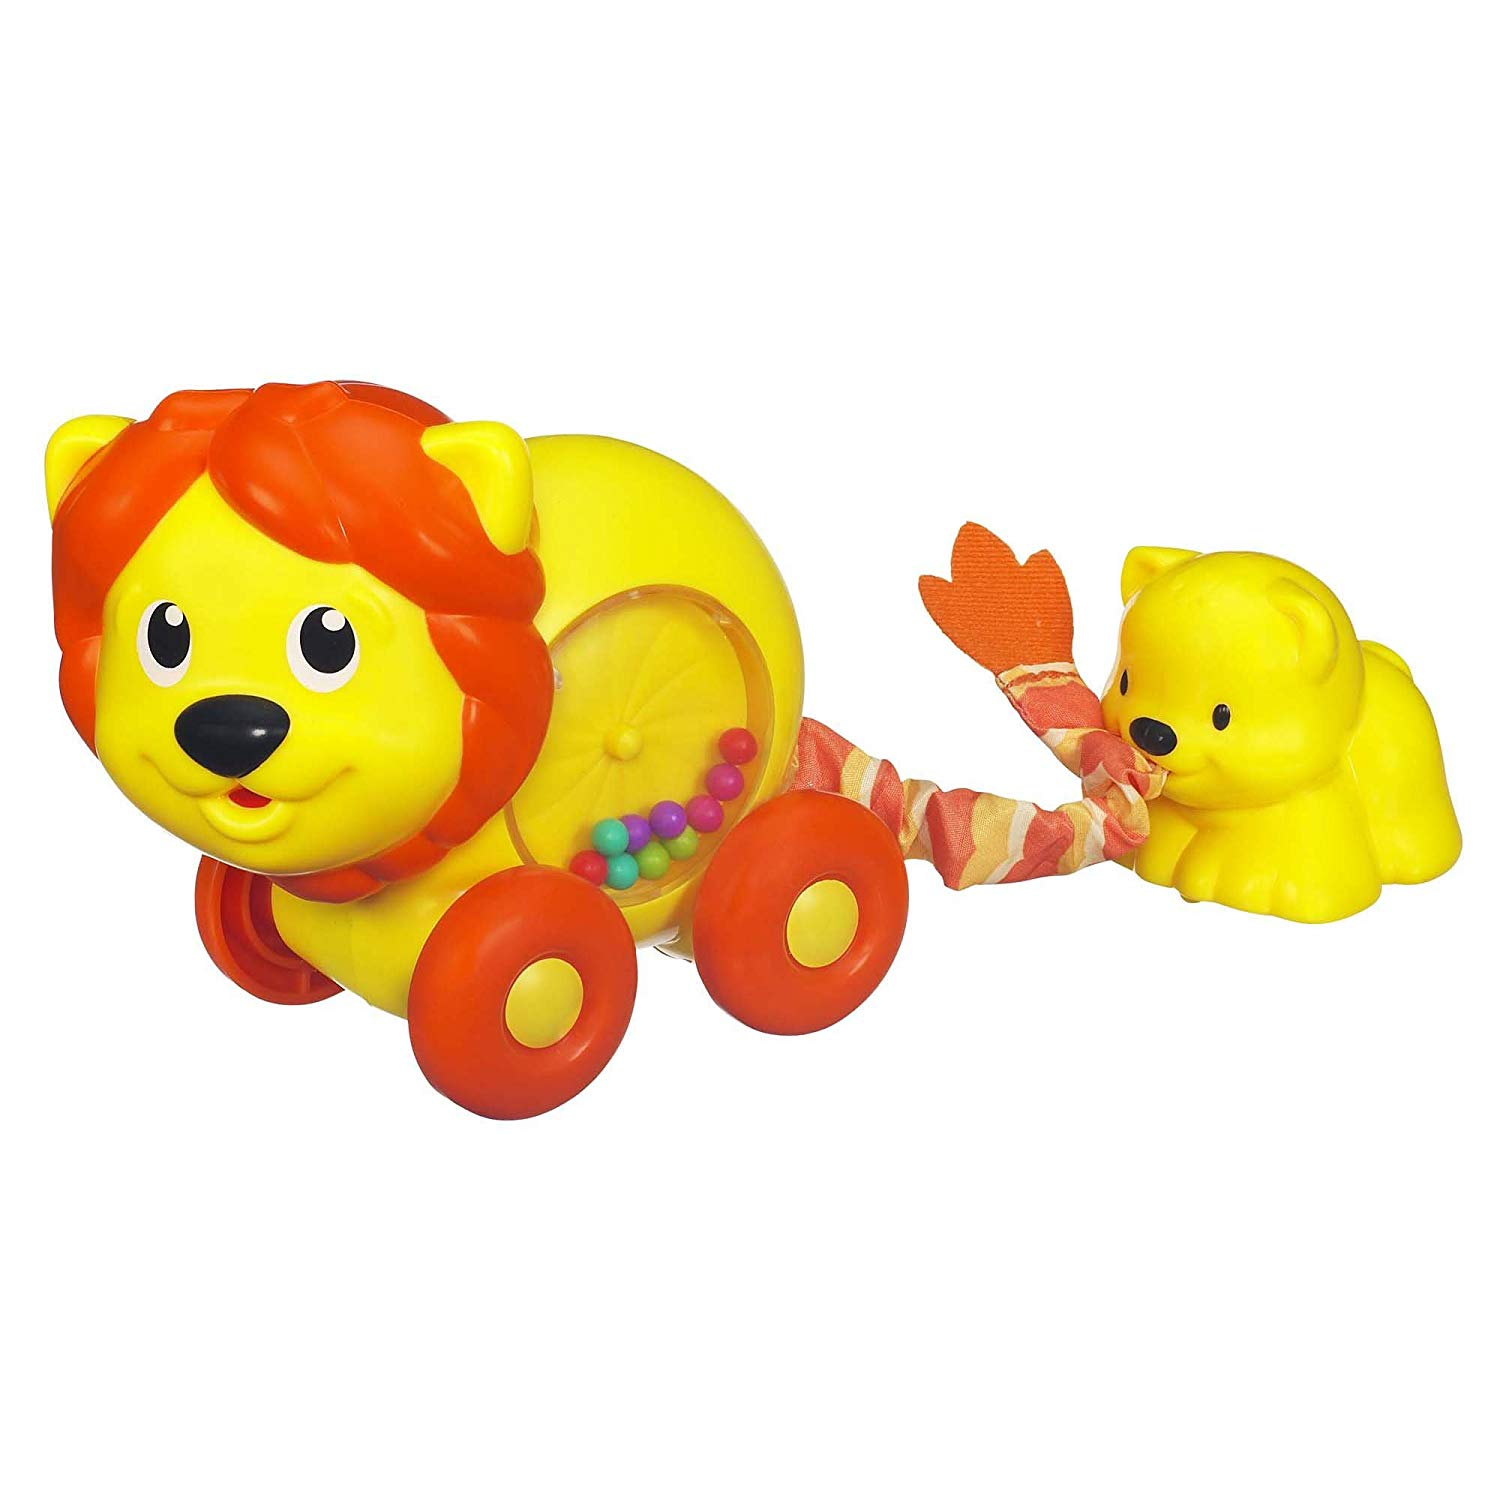 Playskool Poppin' Park Rumblin' Animals Toy by